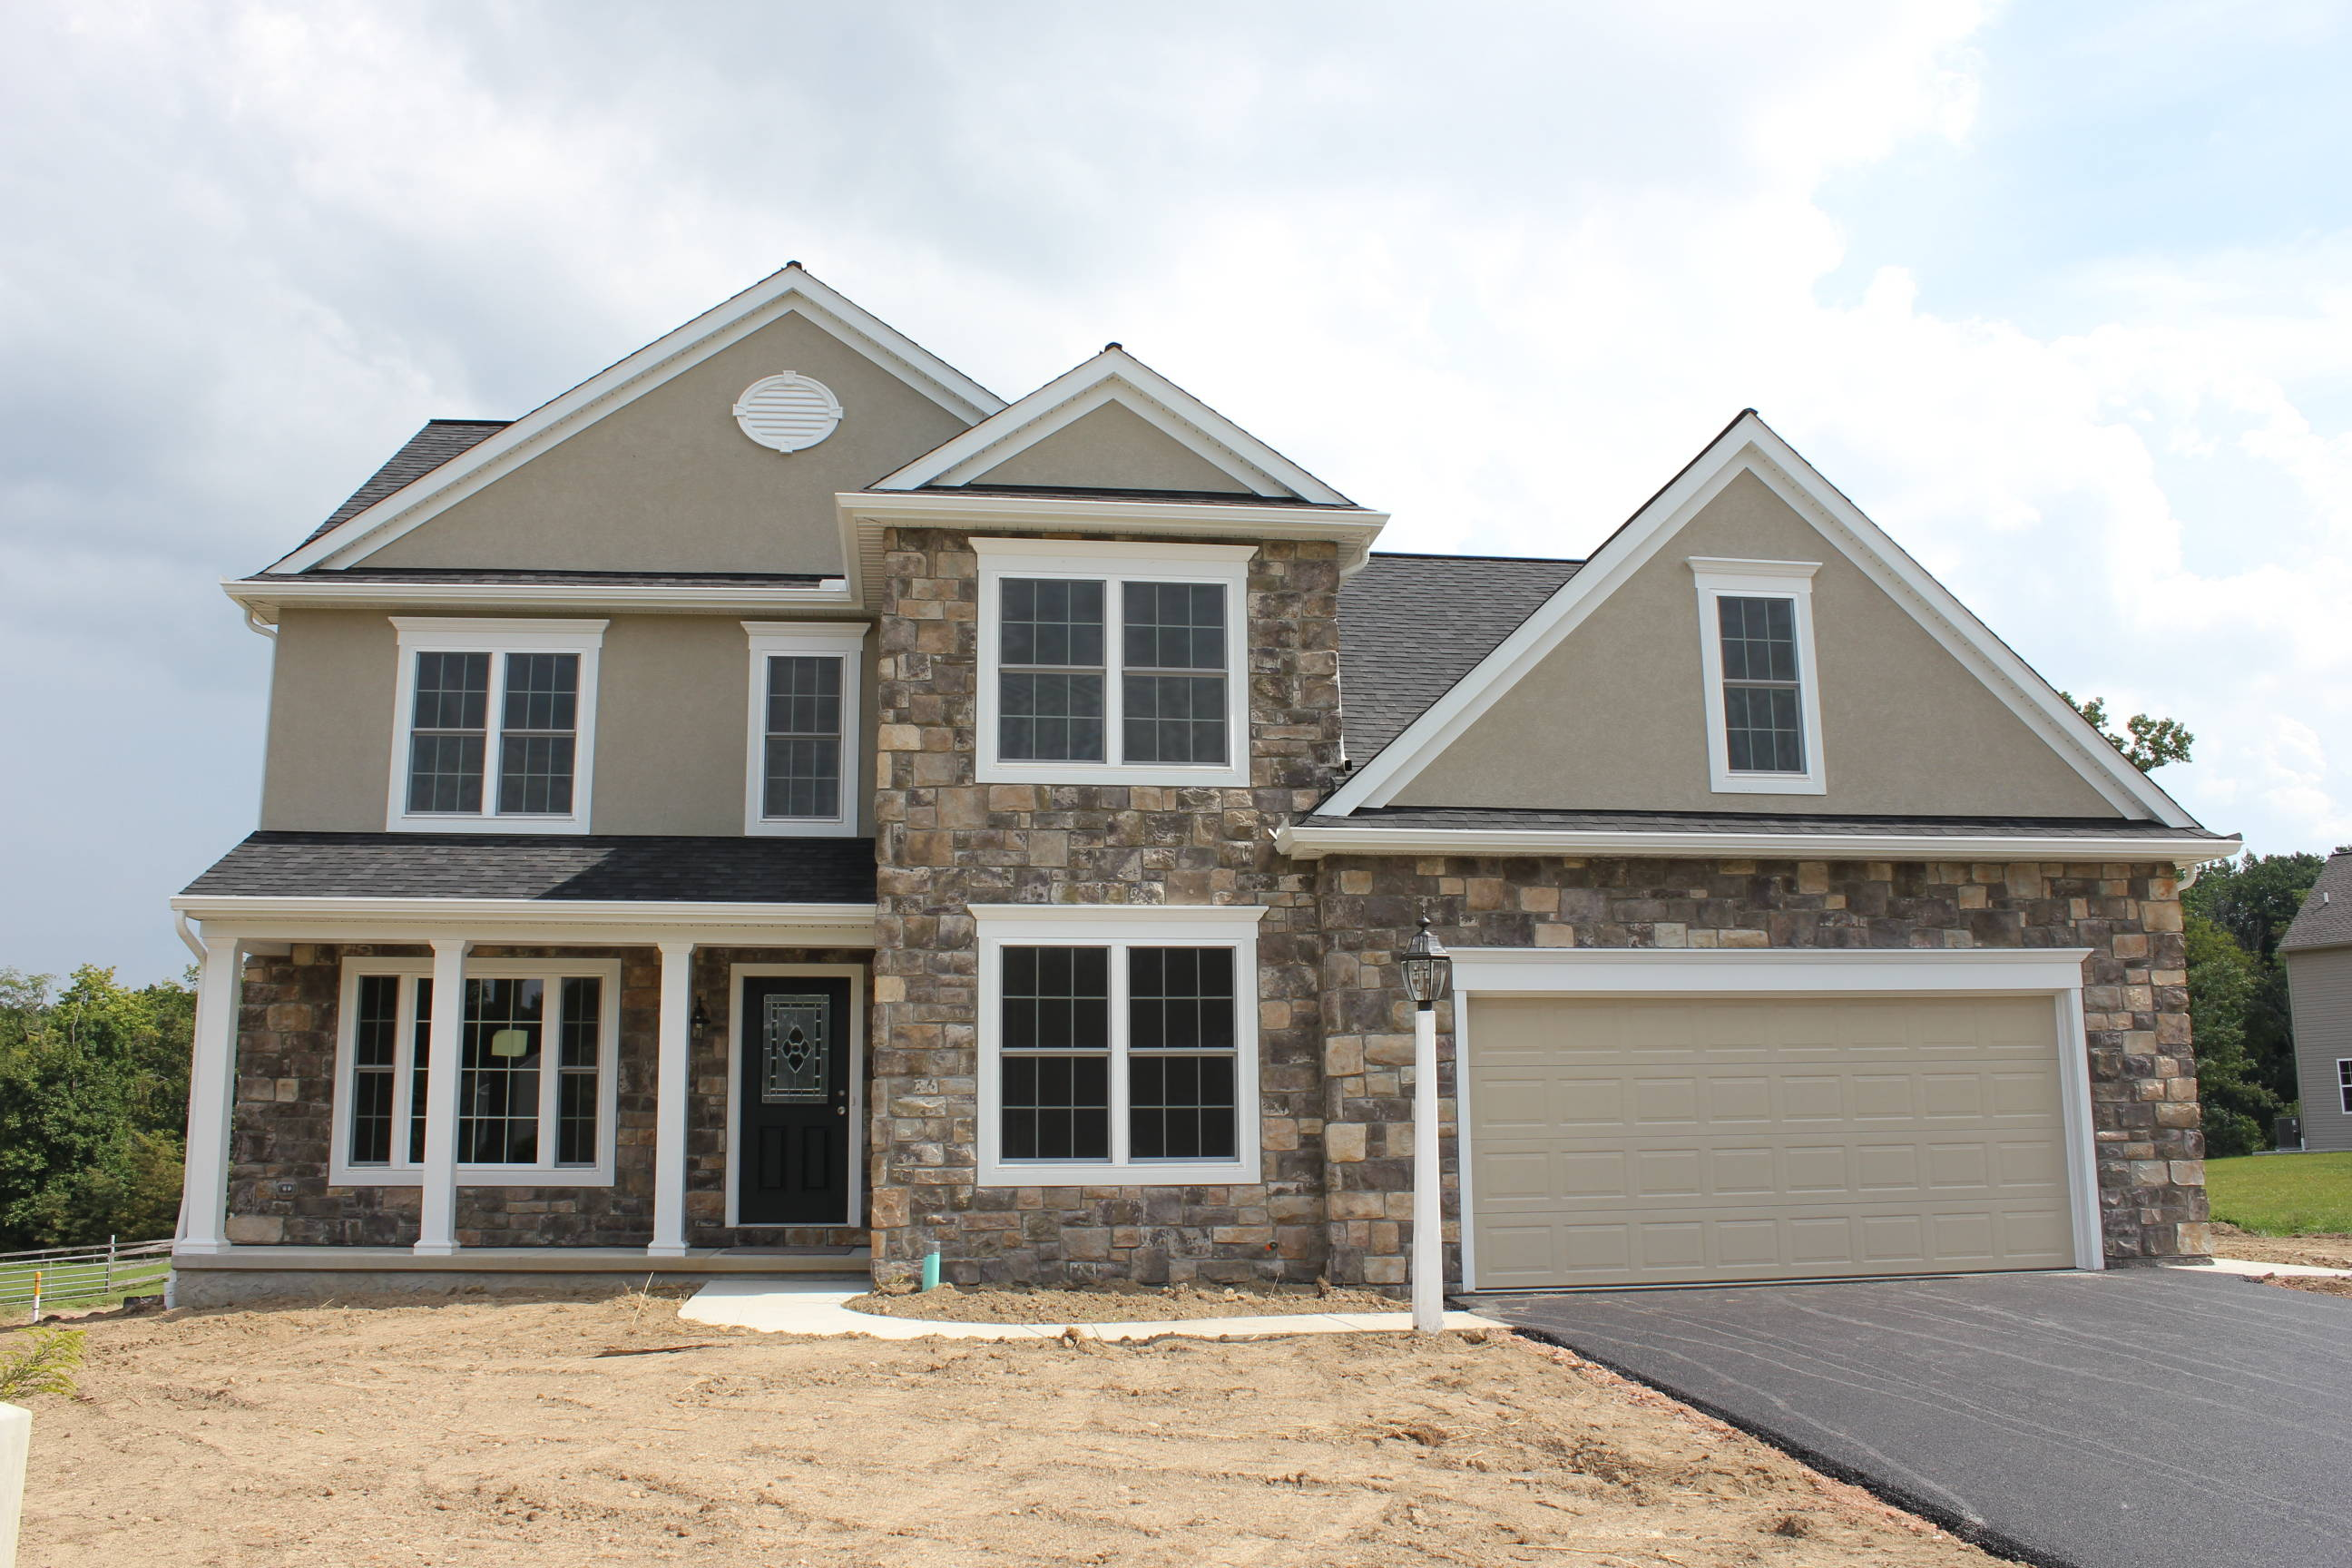 5 bedroom single family home for sale no york schools for New construction windows for sale